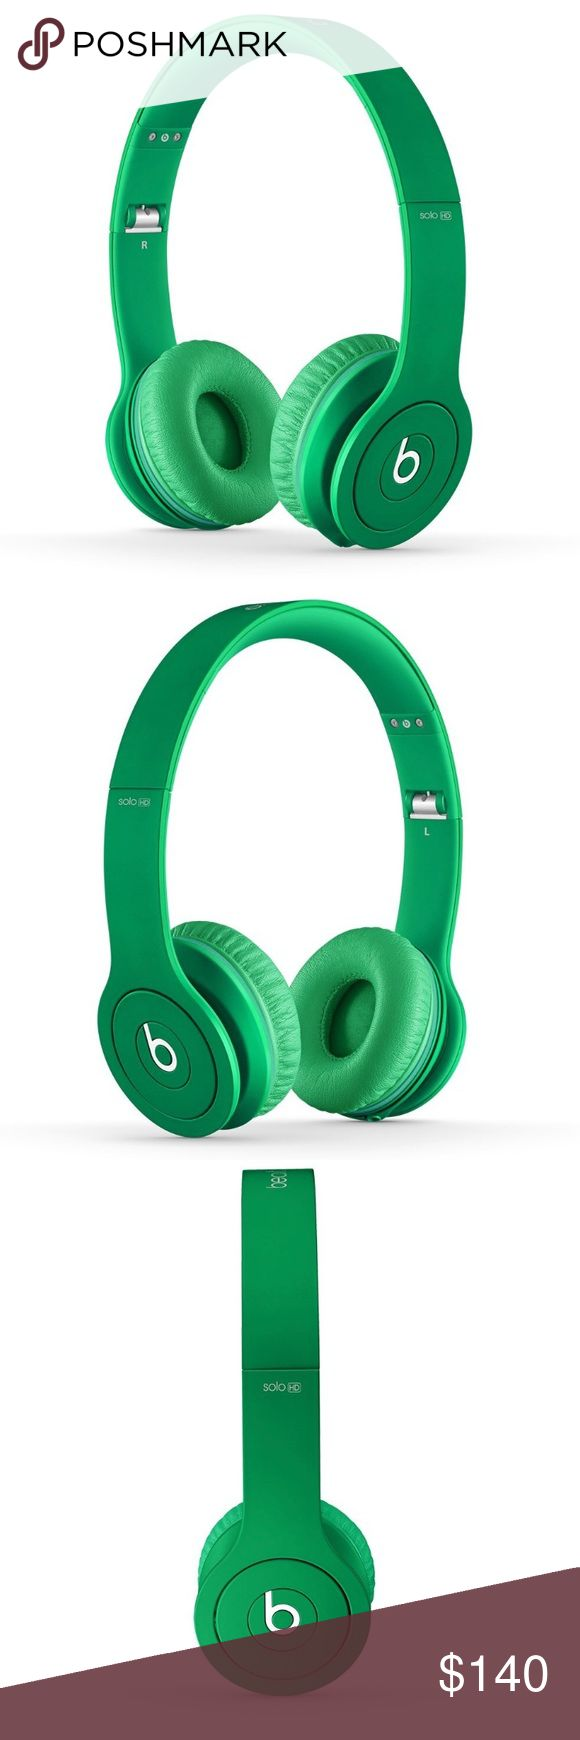 Beats Solo HD (wired) Beats Solo HD wired in matte green. Only used a few times, in perfect condition! Comes with case. Other